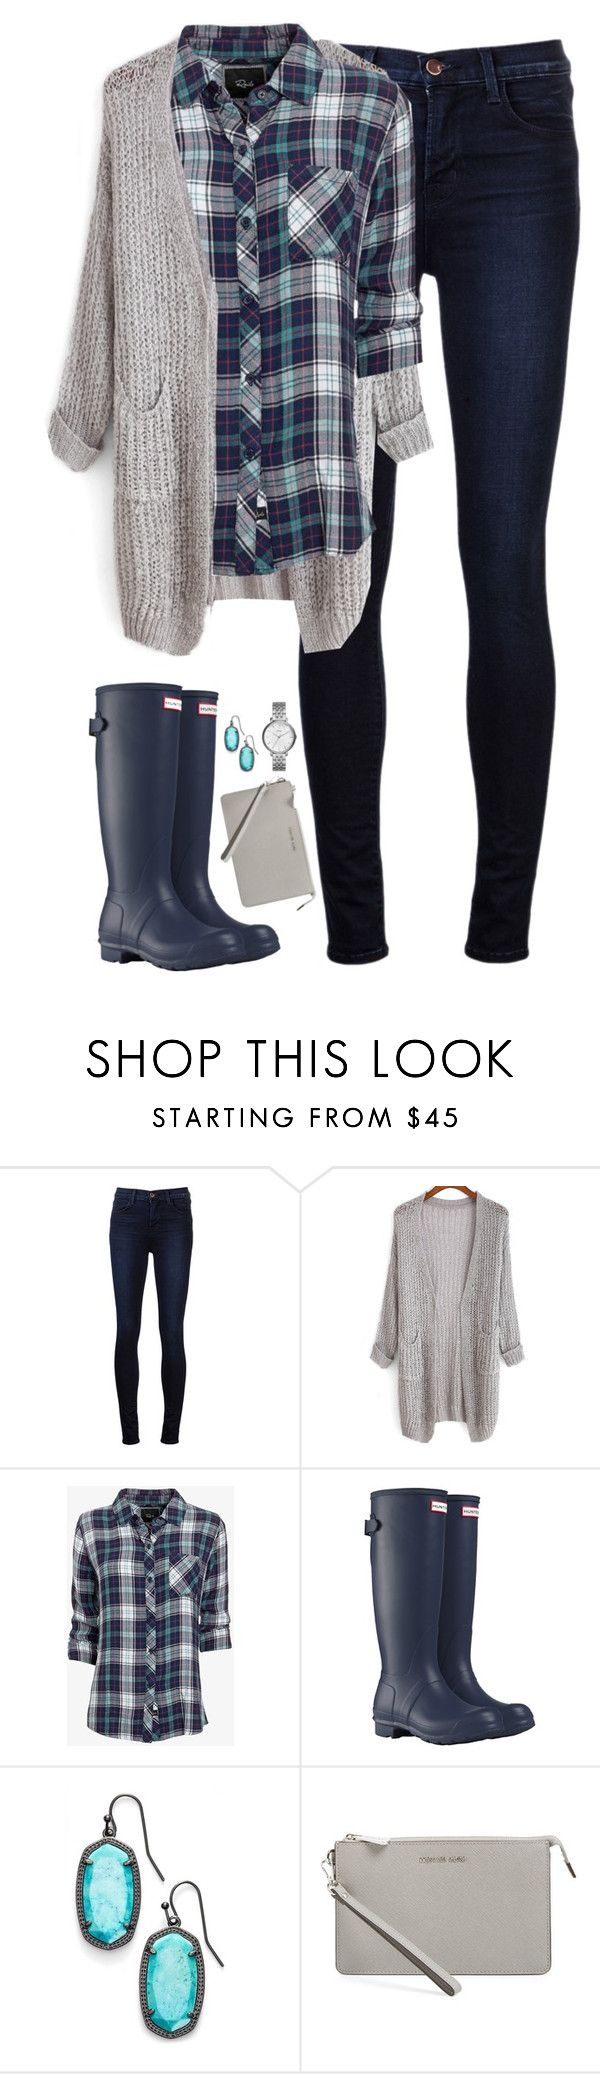 """Navy & teal plaid with gray cardigan"" by steffiestaffie ❤ liked on Polyvore featuring J Brand, Rails, Hunter, Kendra Scott, MICHAEL Michael Kors, FOSSIL, women's clothing, women's fashion, women and female"